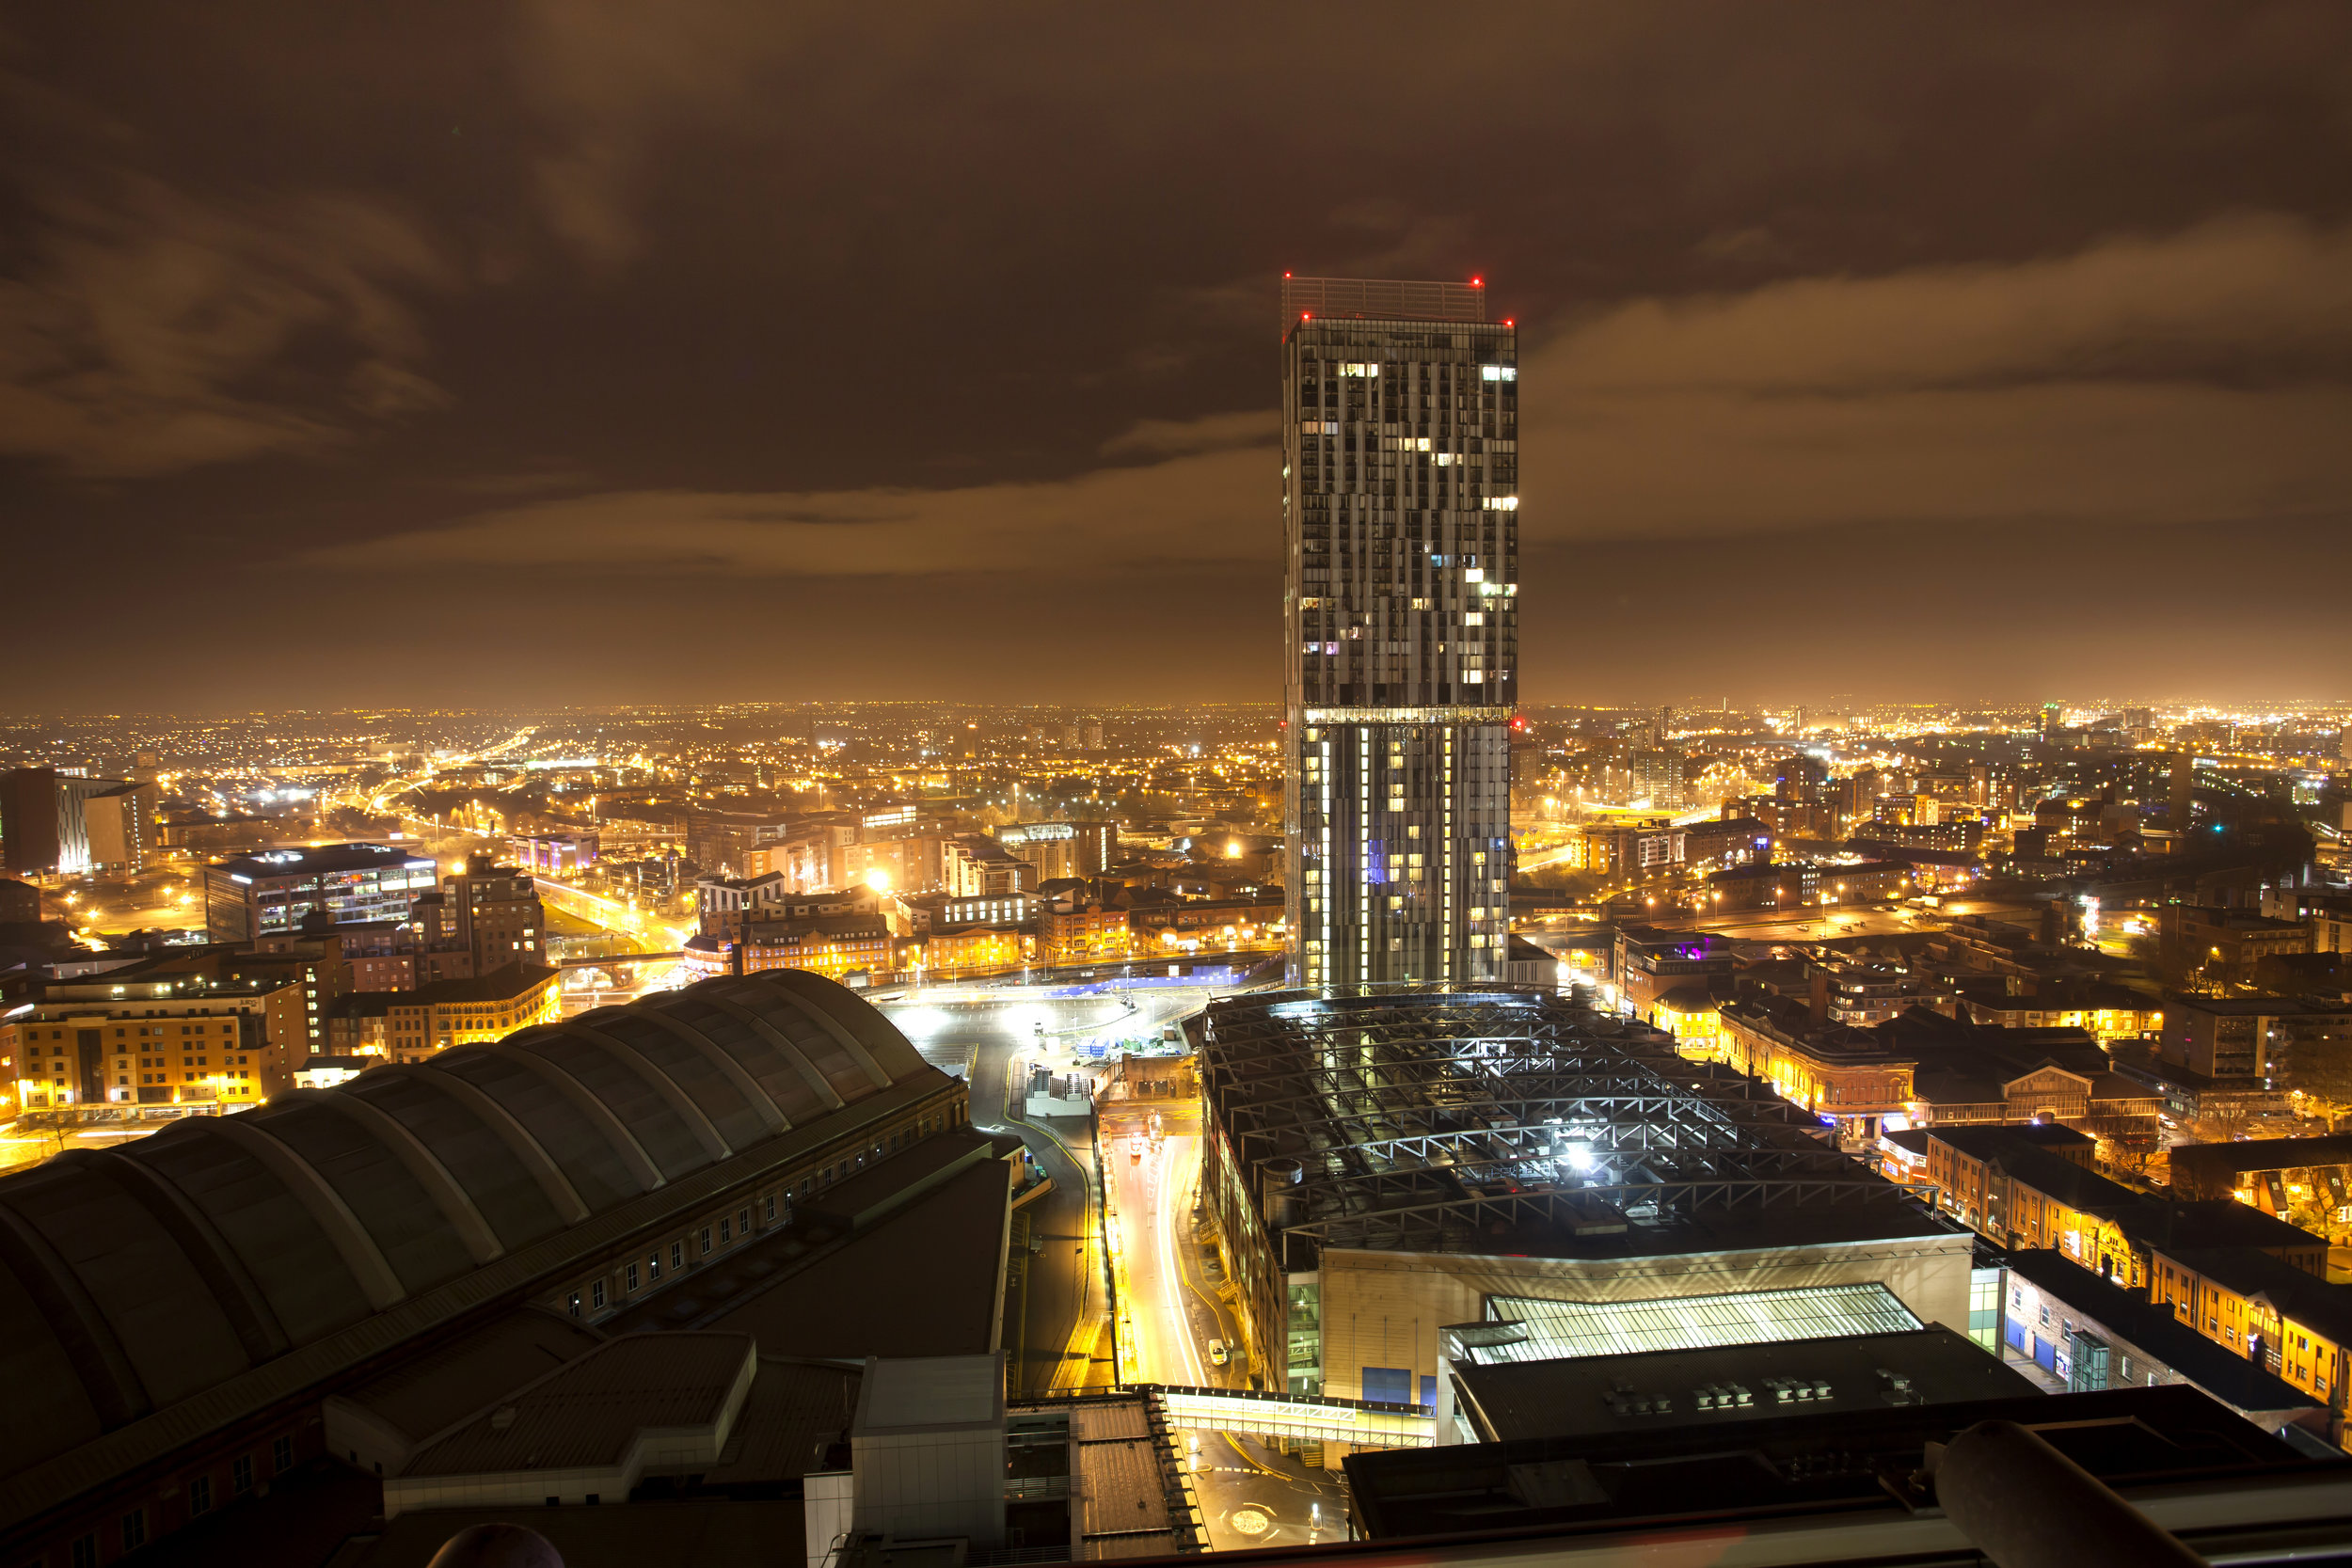 City roof top view, Manchester_148272209.jpg